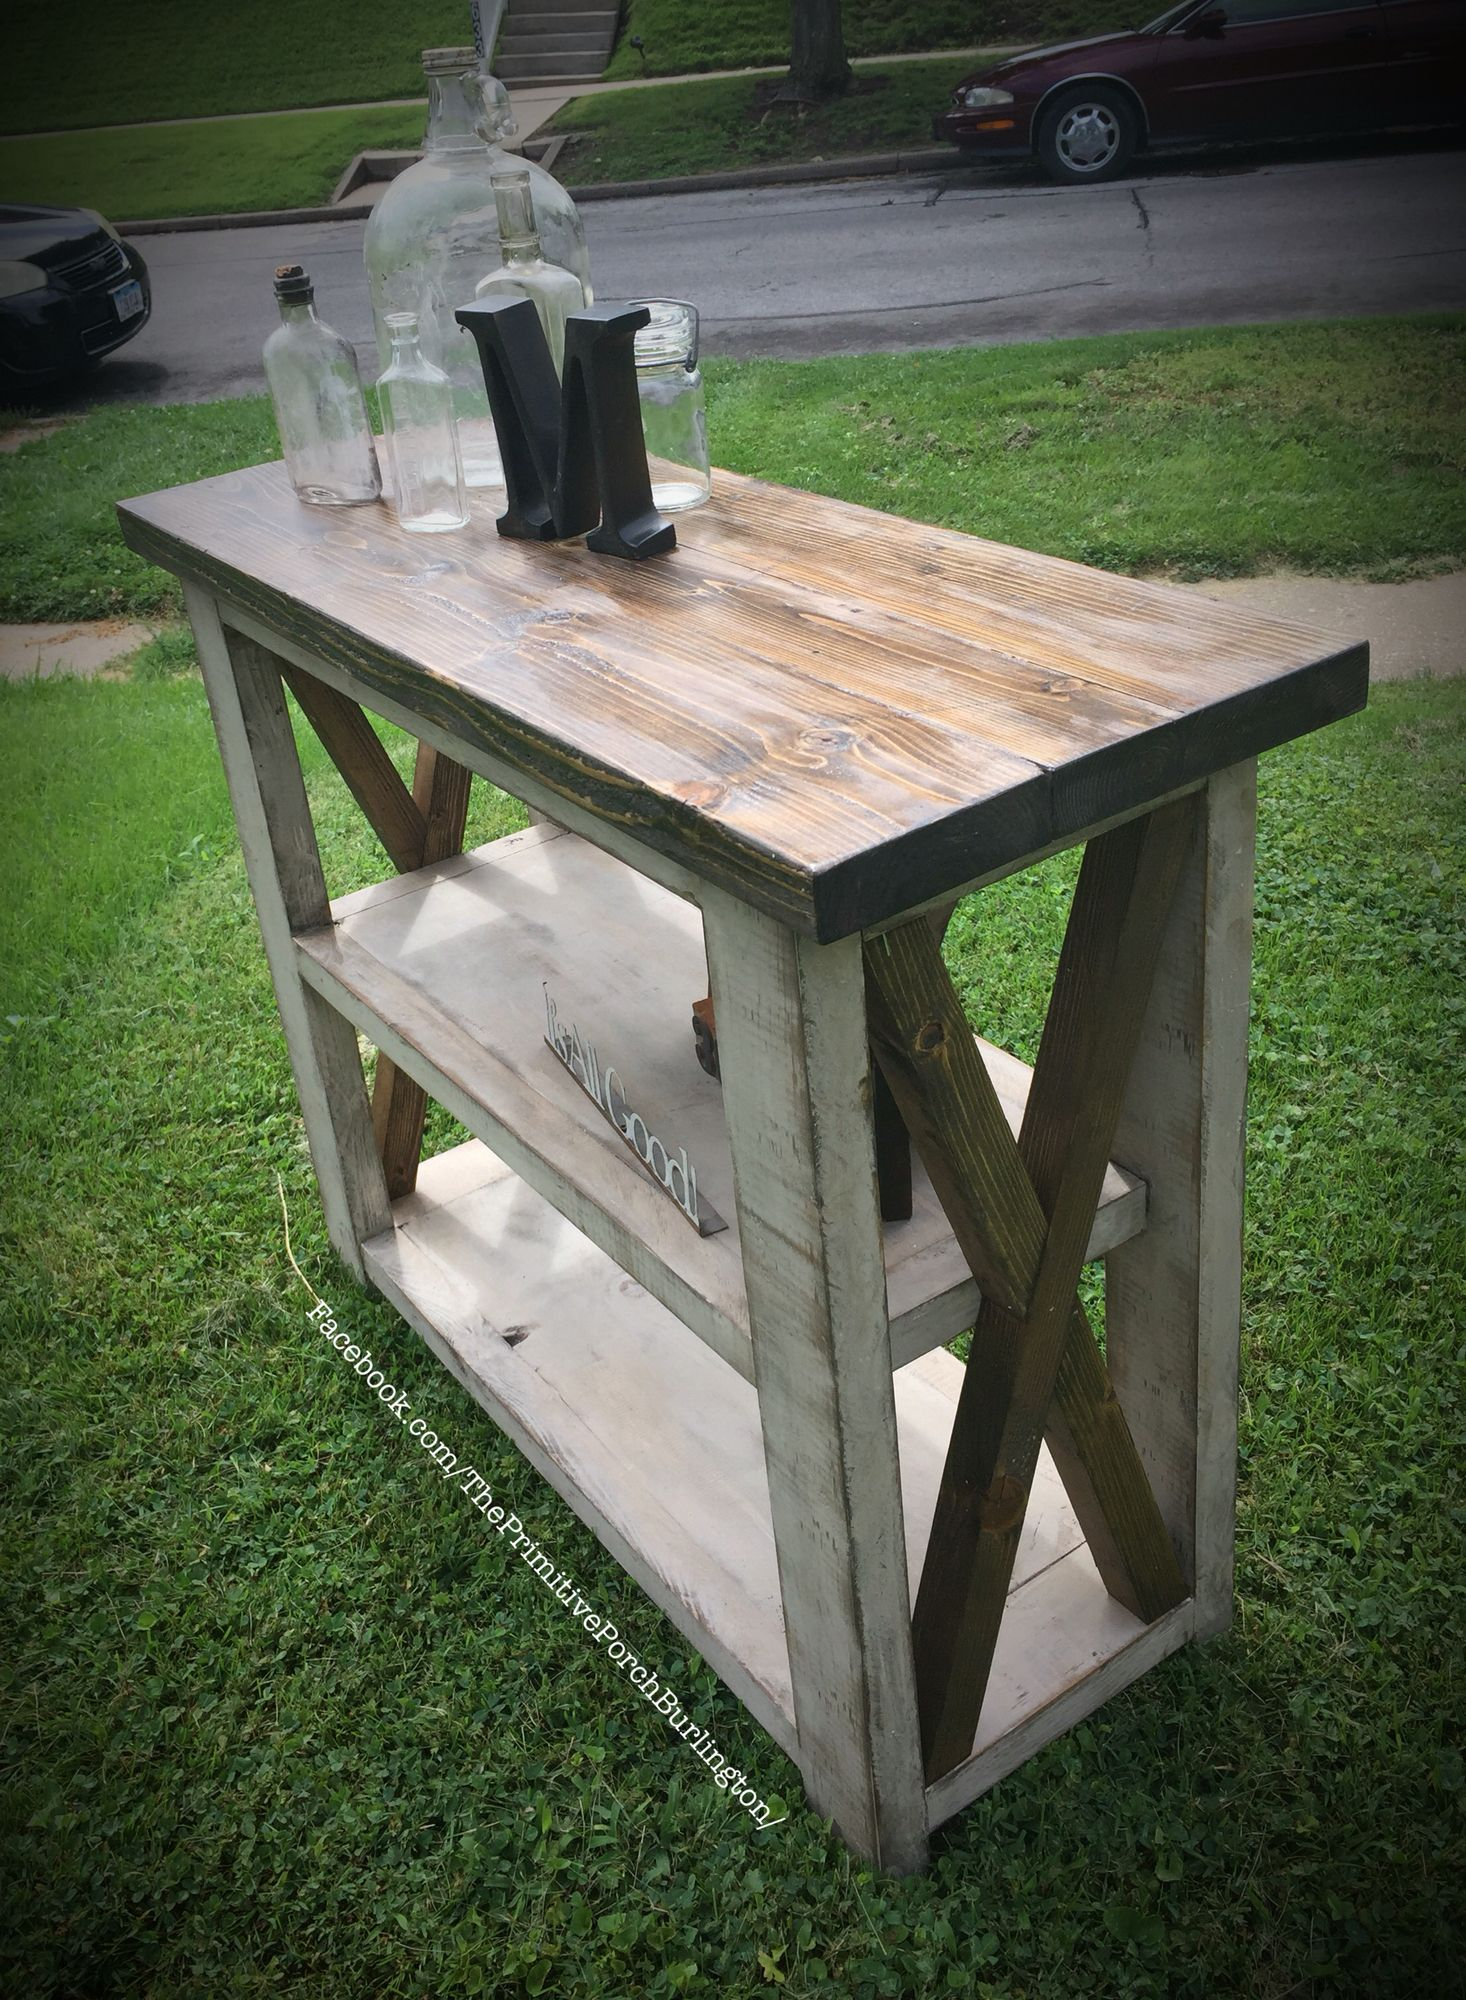 36 inch long X console table. Ana white DIY. Extra rustic white